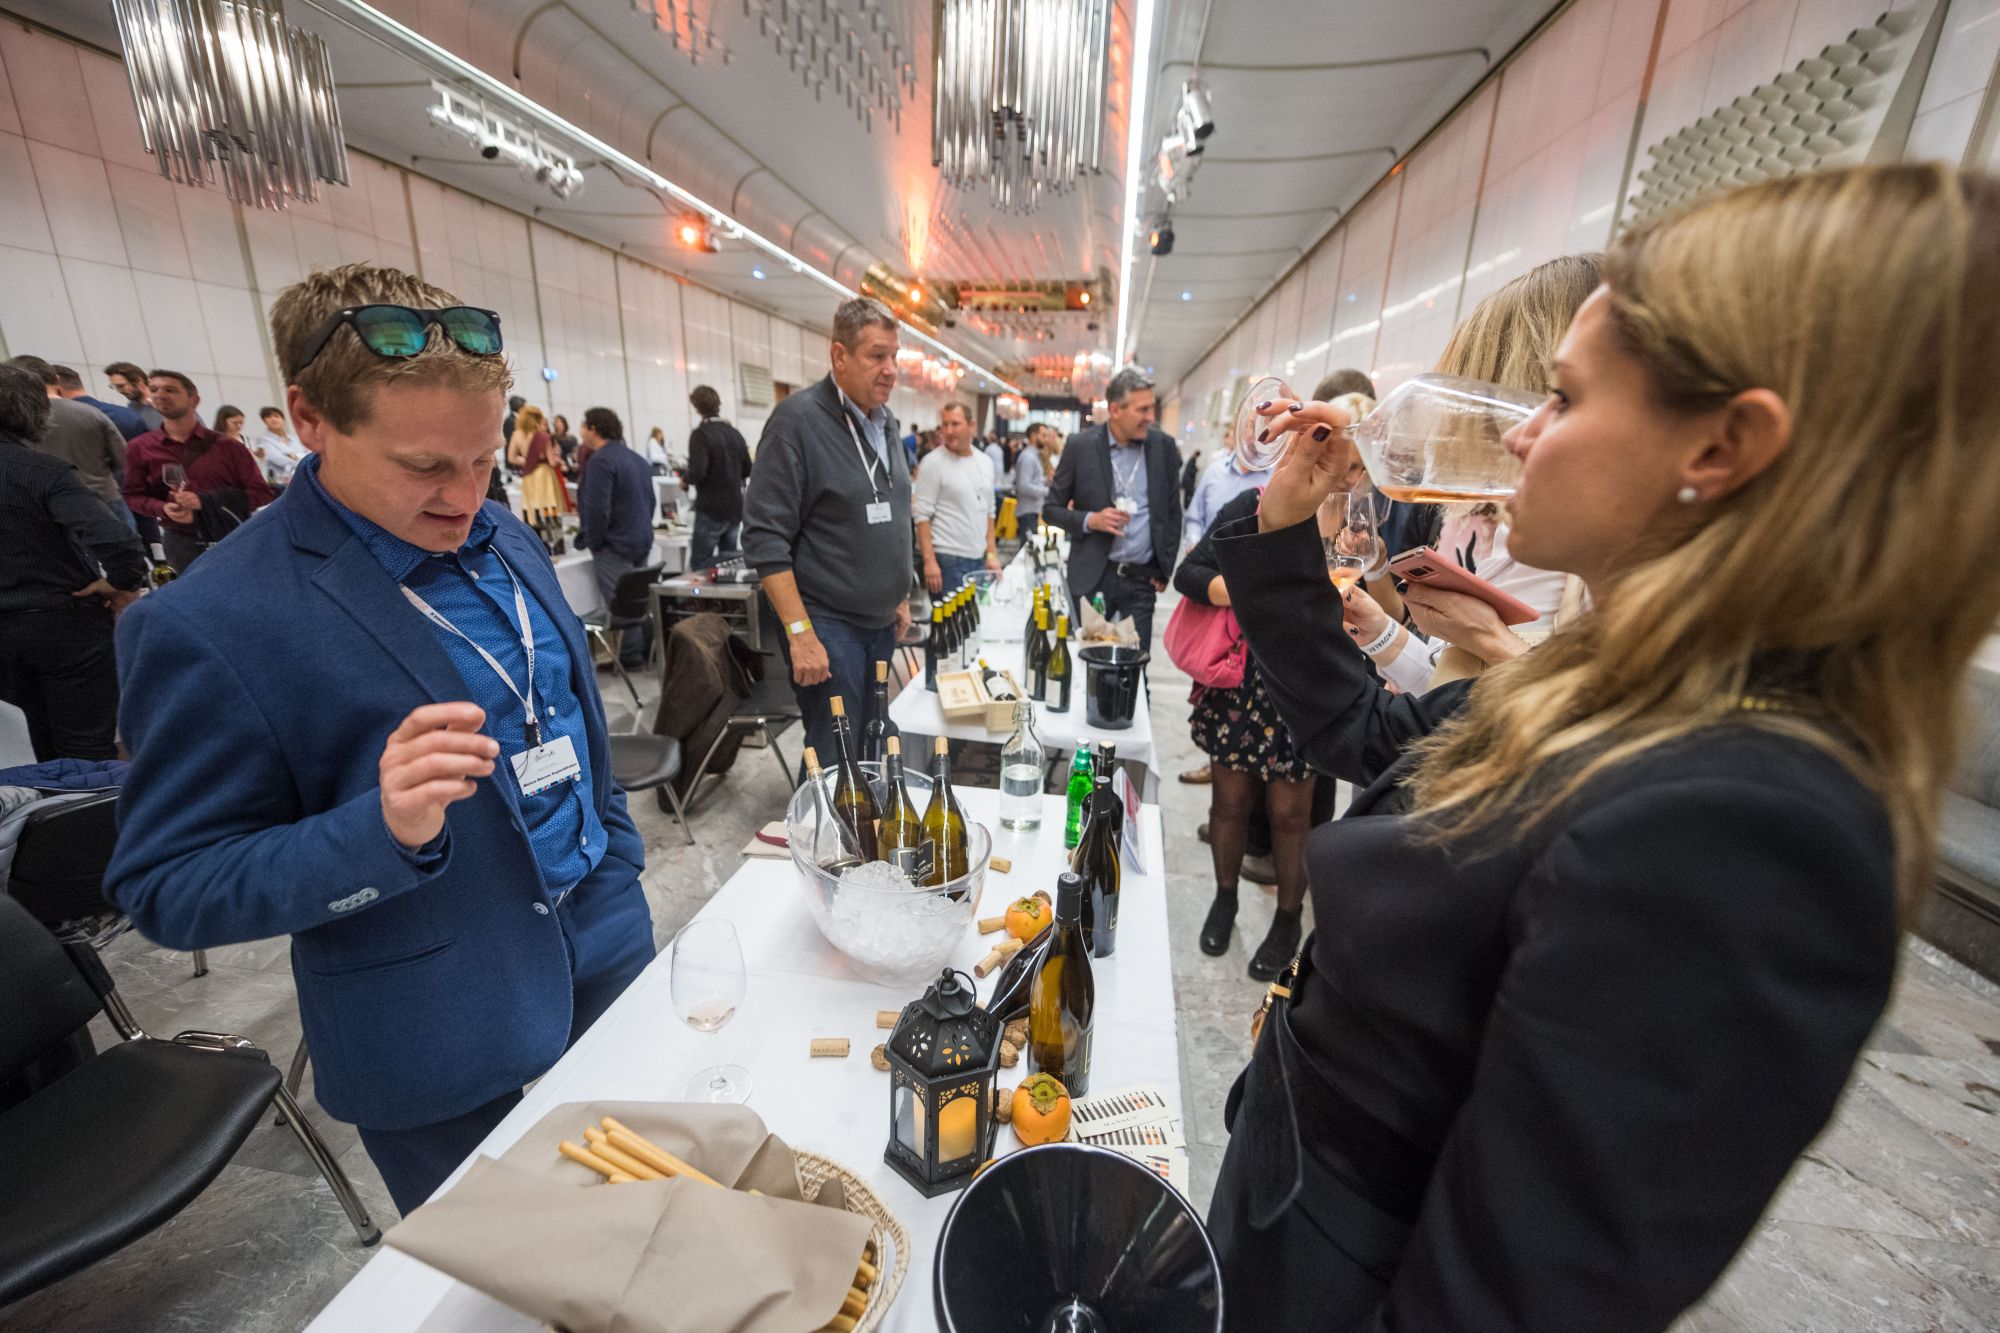 Wine enthusiasts enjoy the Slovenian Wine Festival